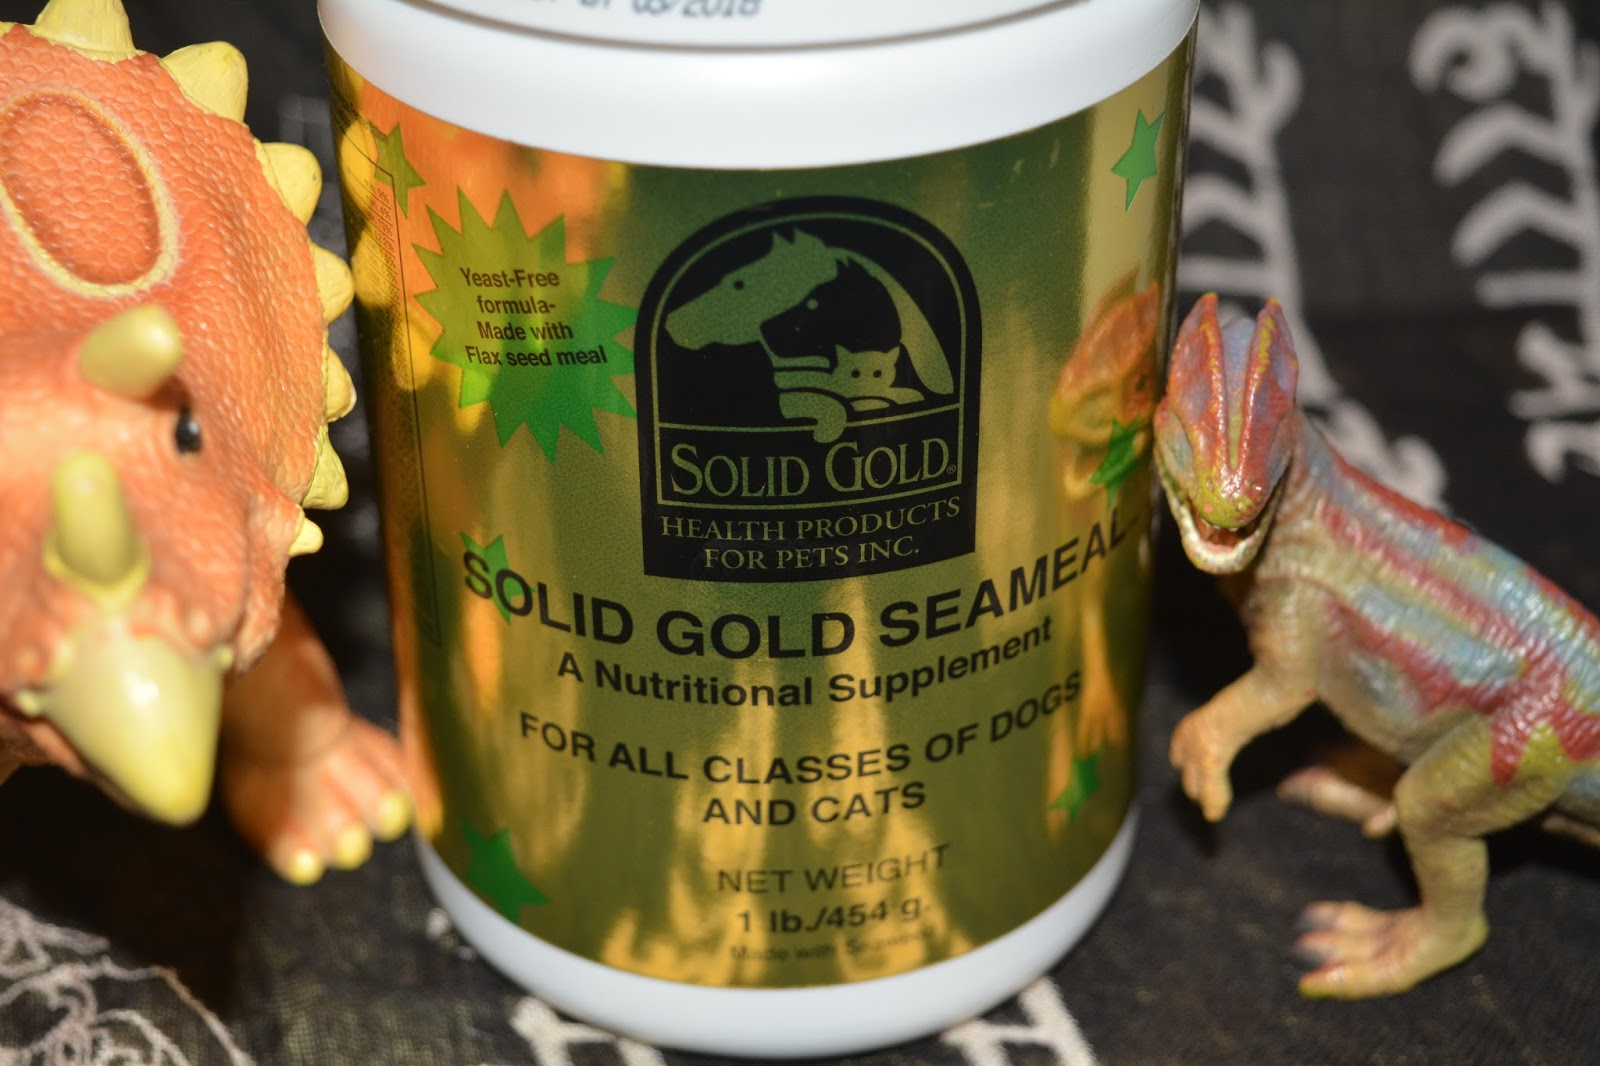 Solid Gold Seameal Nutritional Supplement